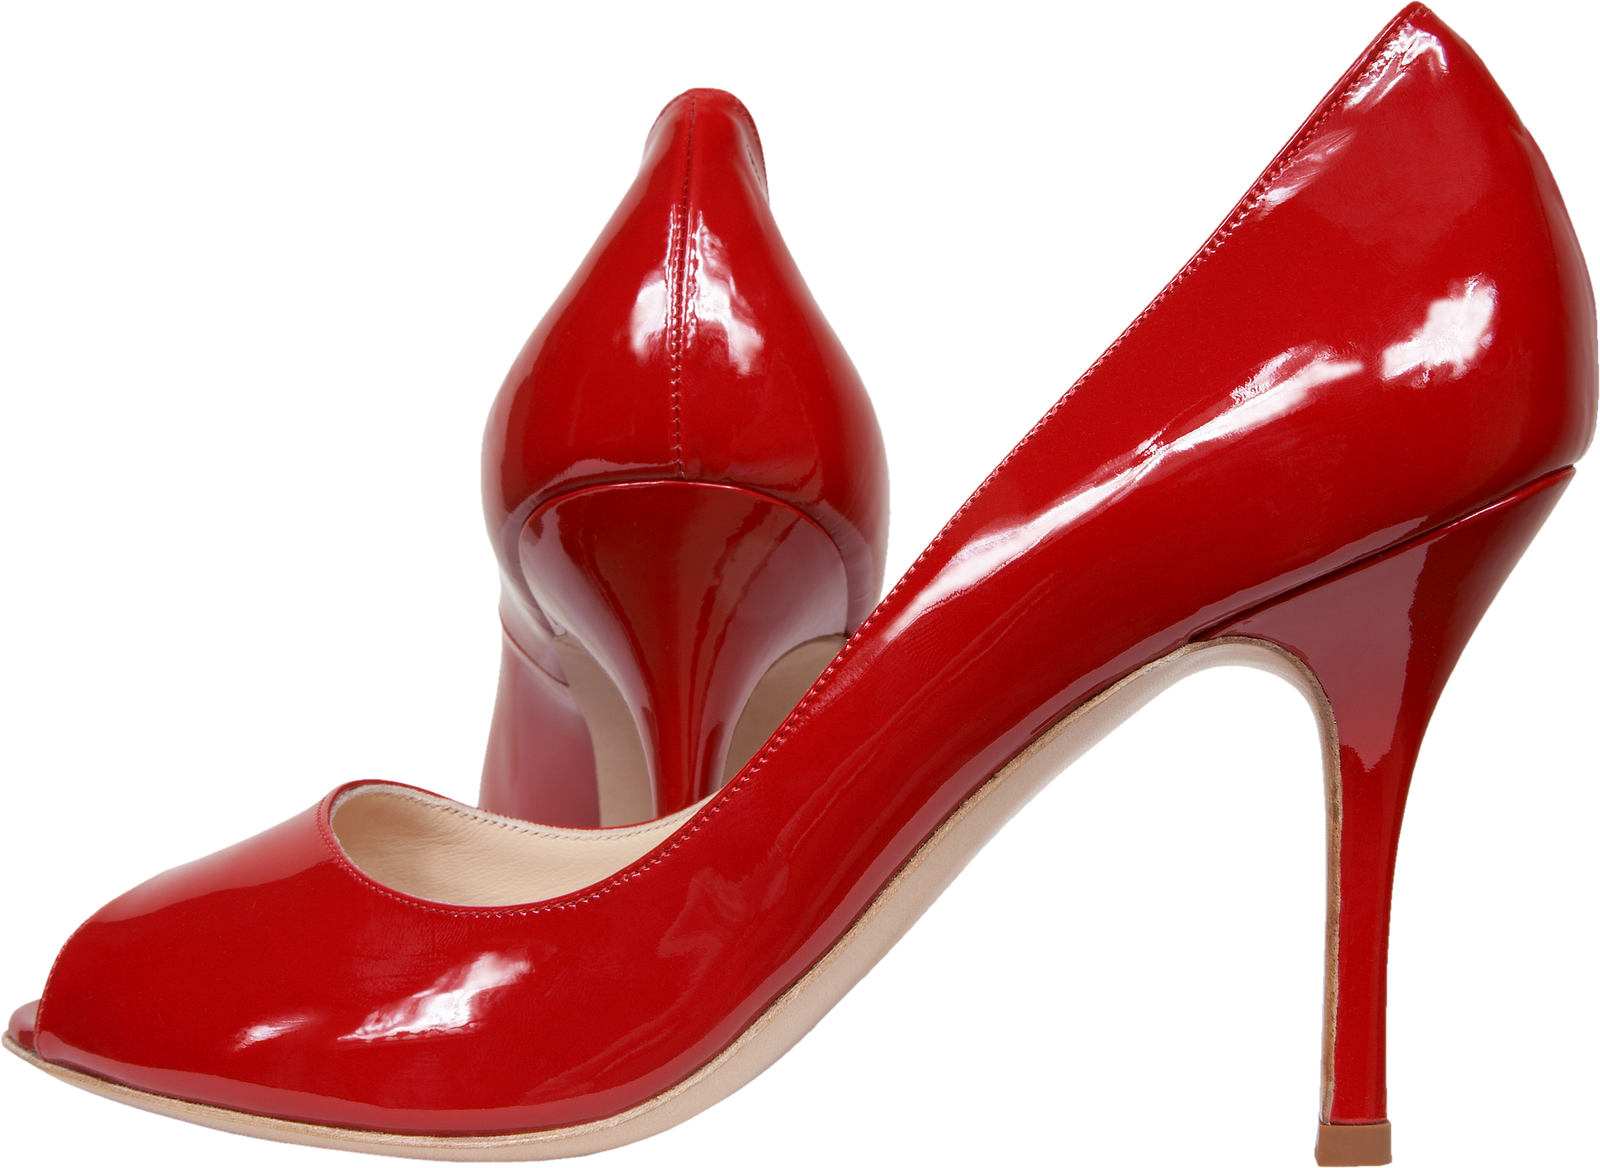 free cut outs red high heel shoes. Black Bedroom Furniture Sets. Home Design Ideas